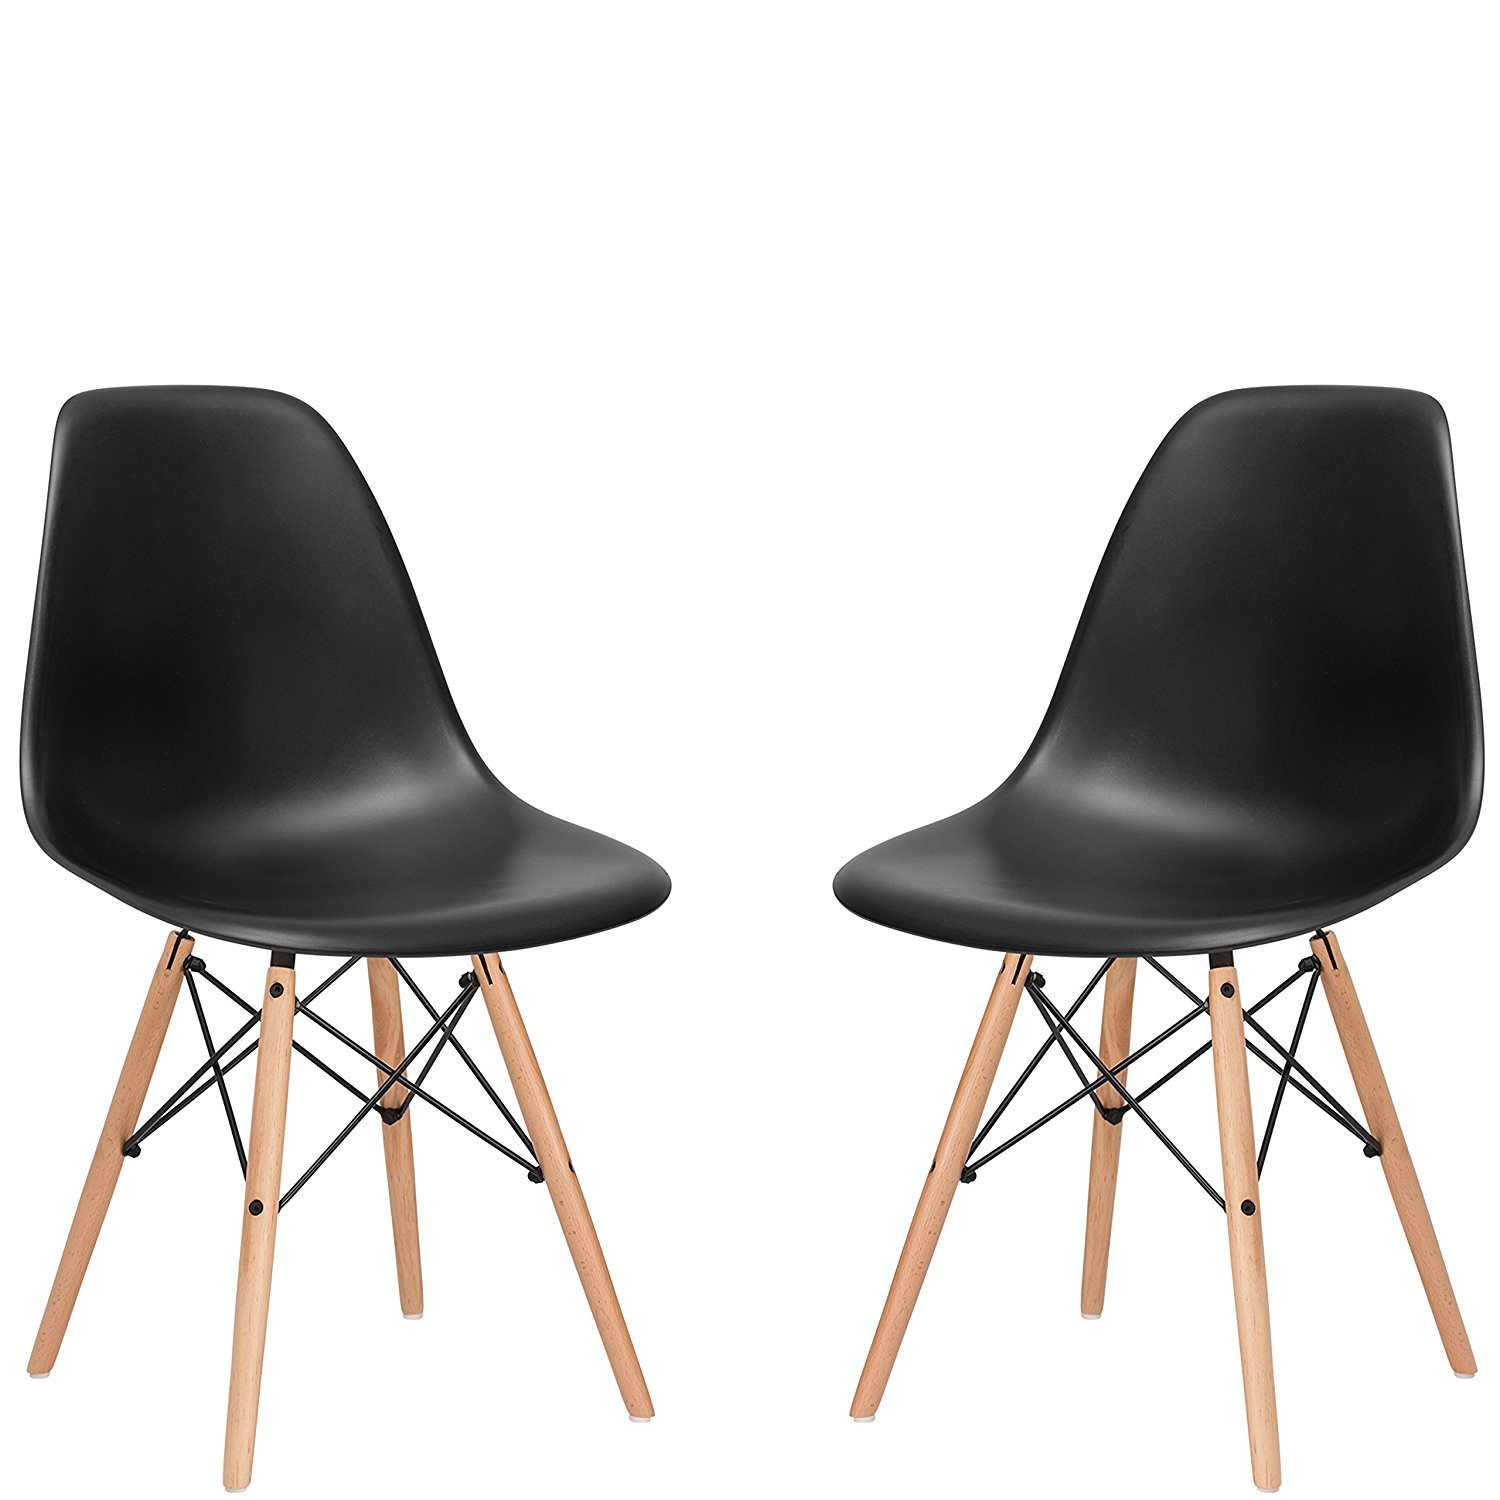 dining chairs buy dining chairs online at best prices in india